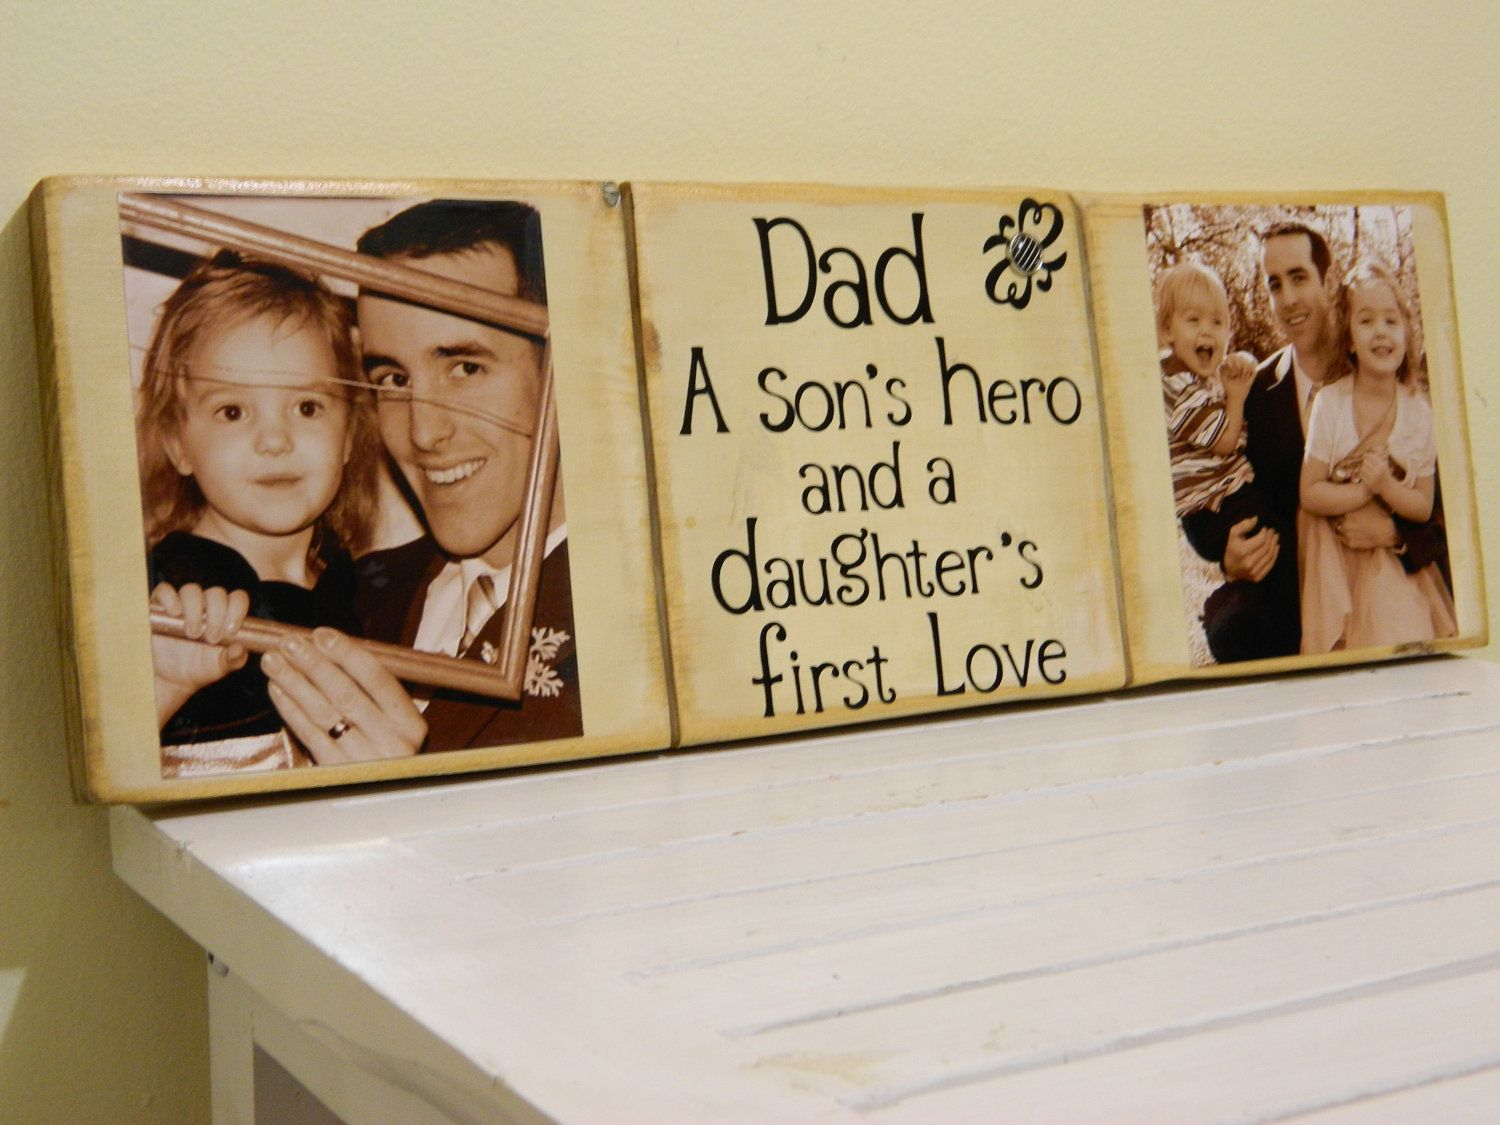 Best Gift For Dad From Daughter Part - 39: Personalized Fathers Day Gift Dad A Sons Hero And A Daughters First Love  Wooden Sign Last